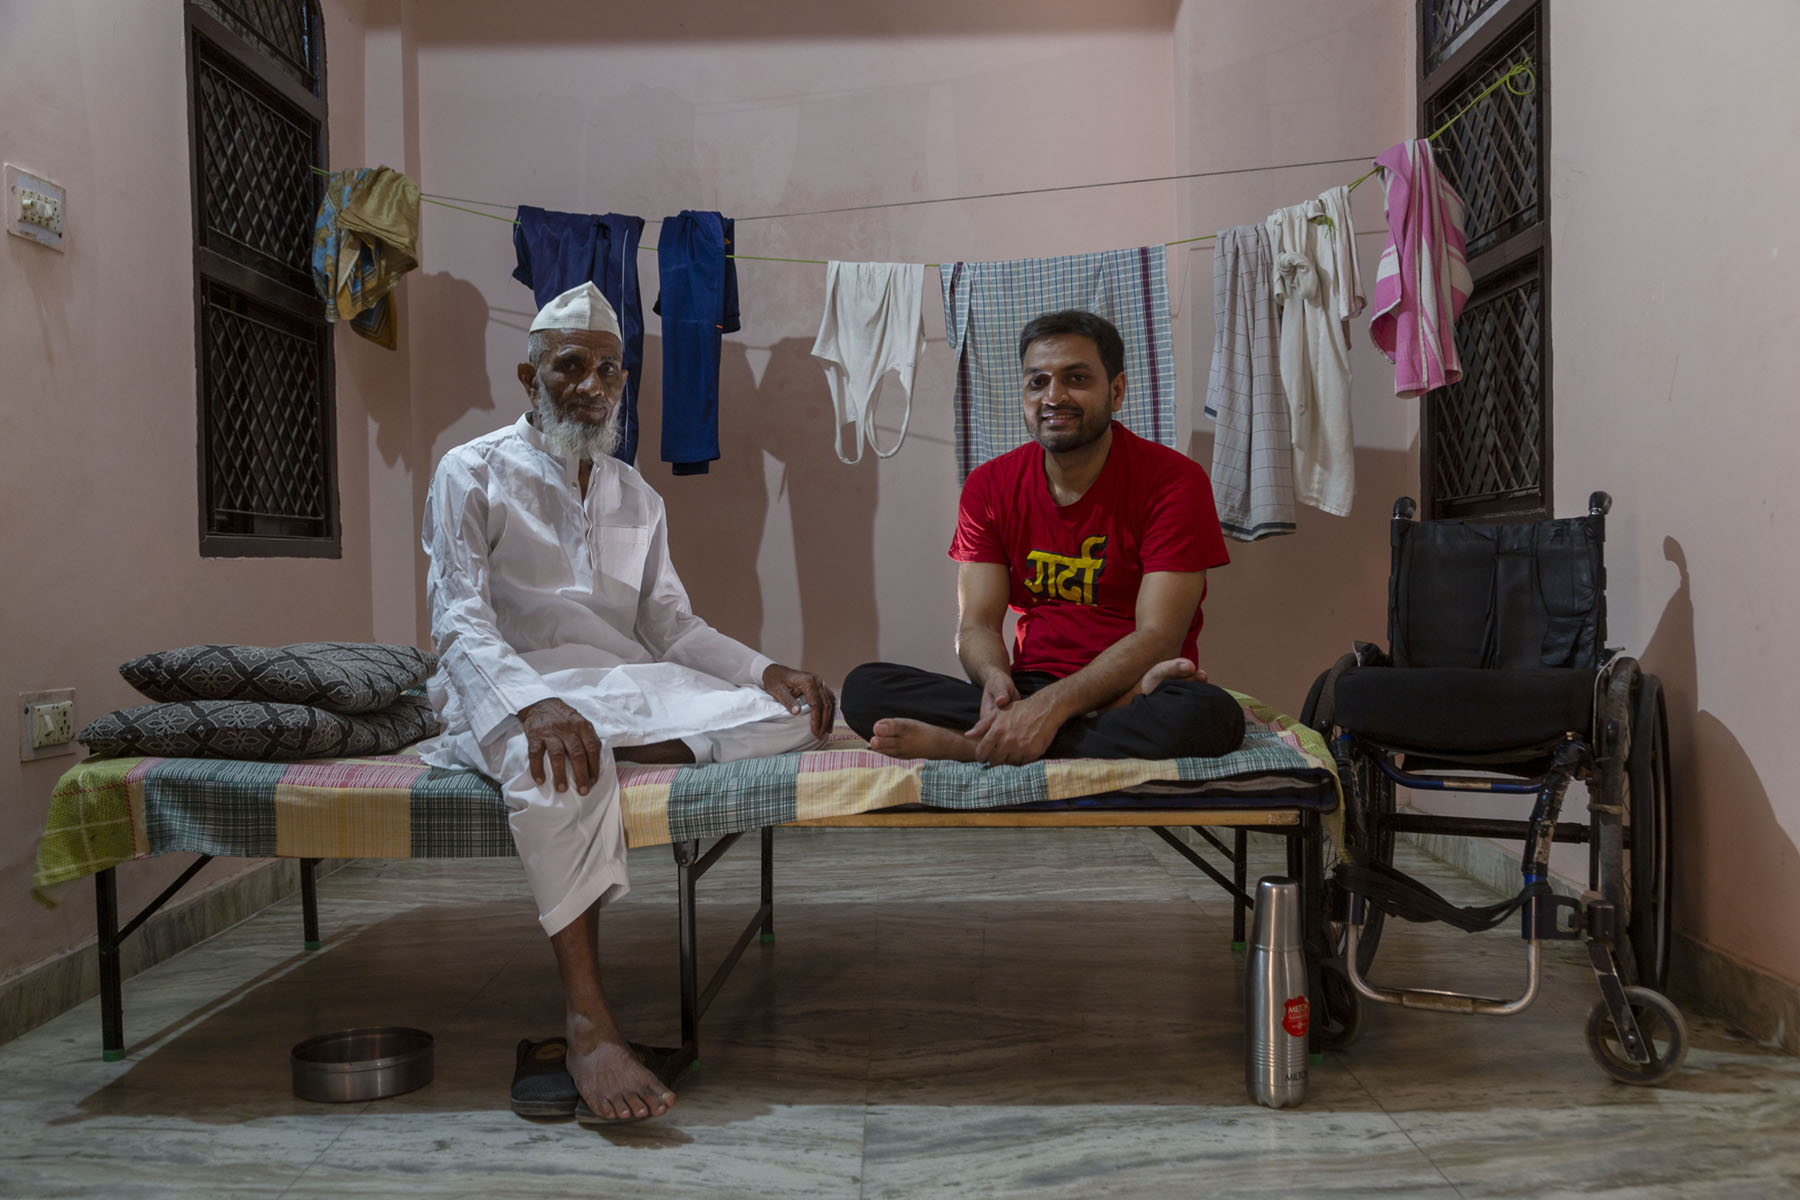 Shams is smiling as he sits cross legged on his bed next to his father Mohammad Nasir (90). Nasir has a full white beard and wears a white kurta-pyjama and white cap. He has one leg folded at the knee resting on the bed, and the other leg dangling to the ground. Shams wears a red T-shirt and black pants.